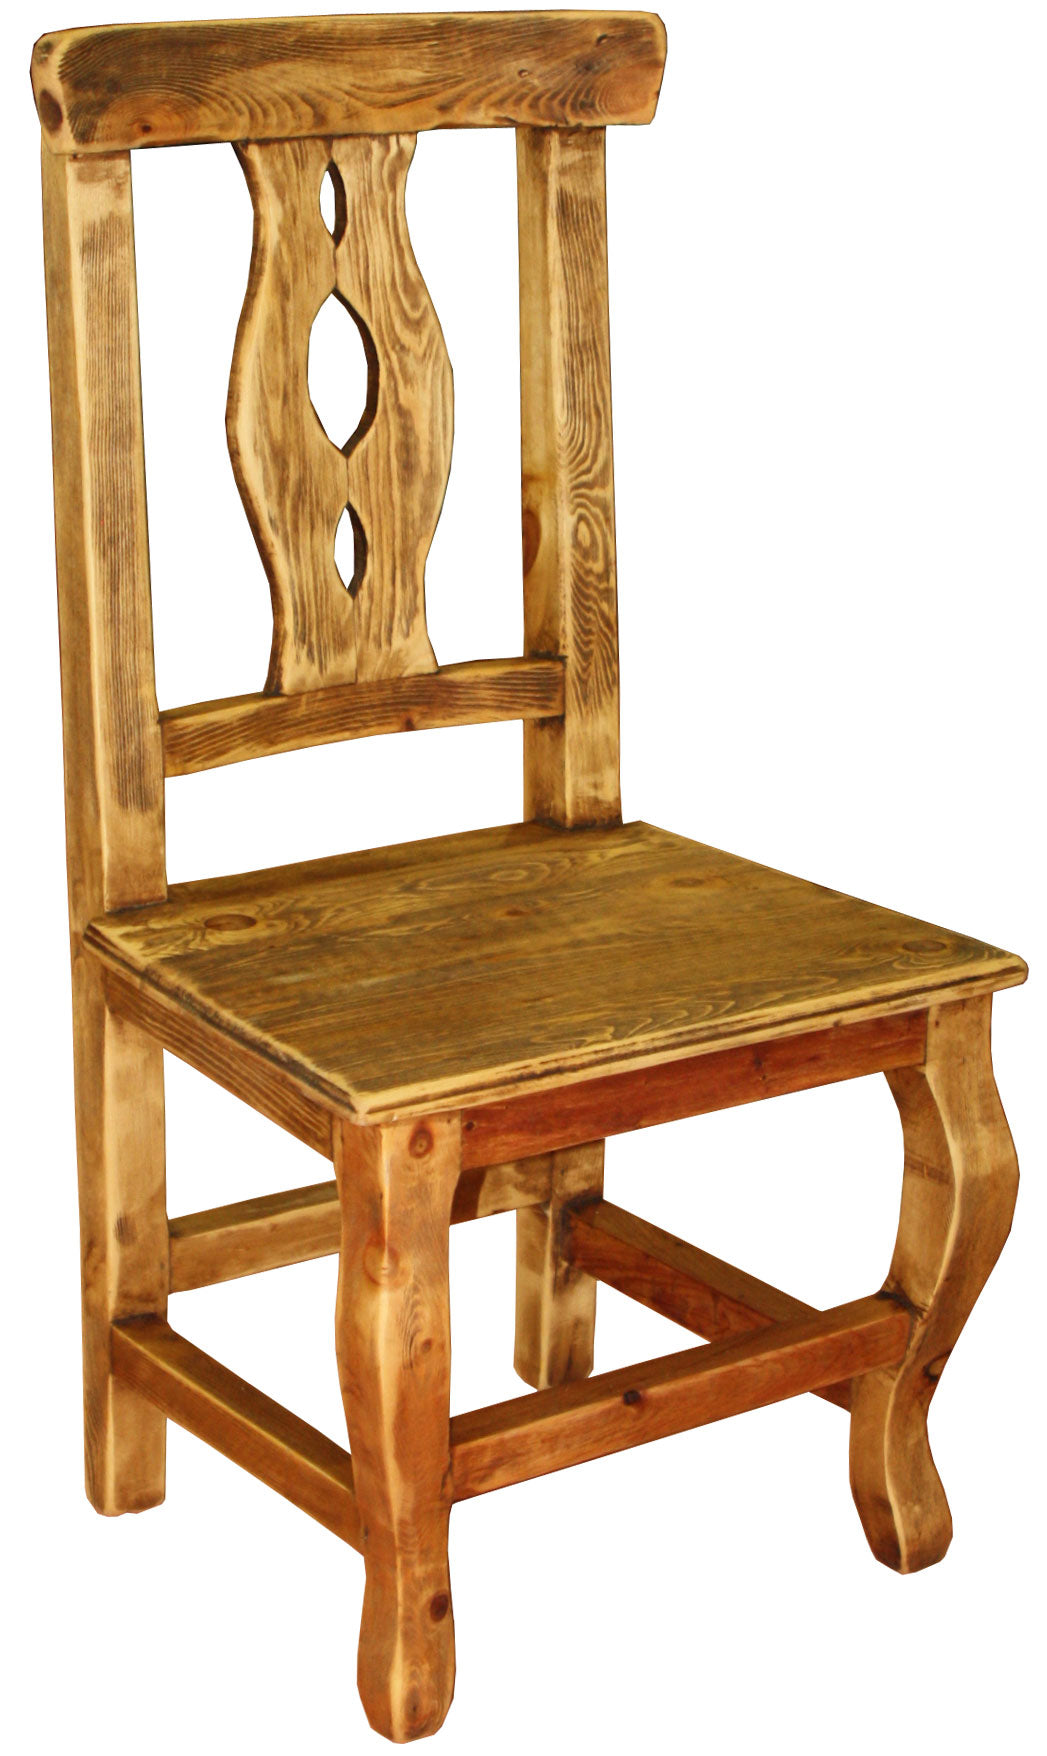 Alis Chair